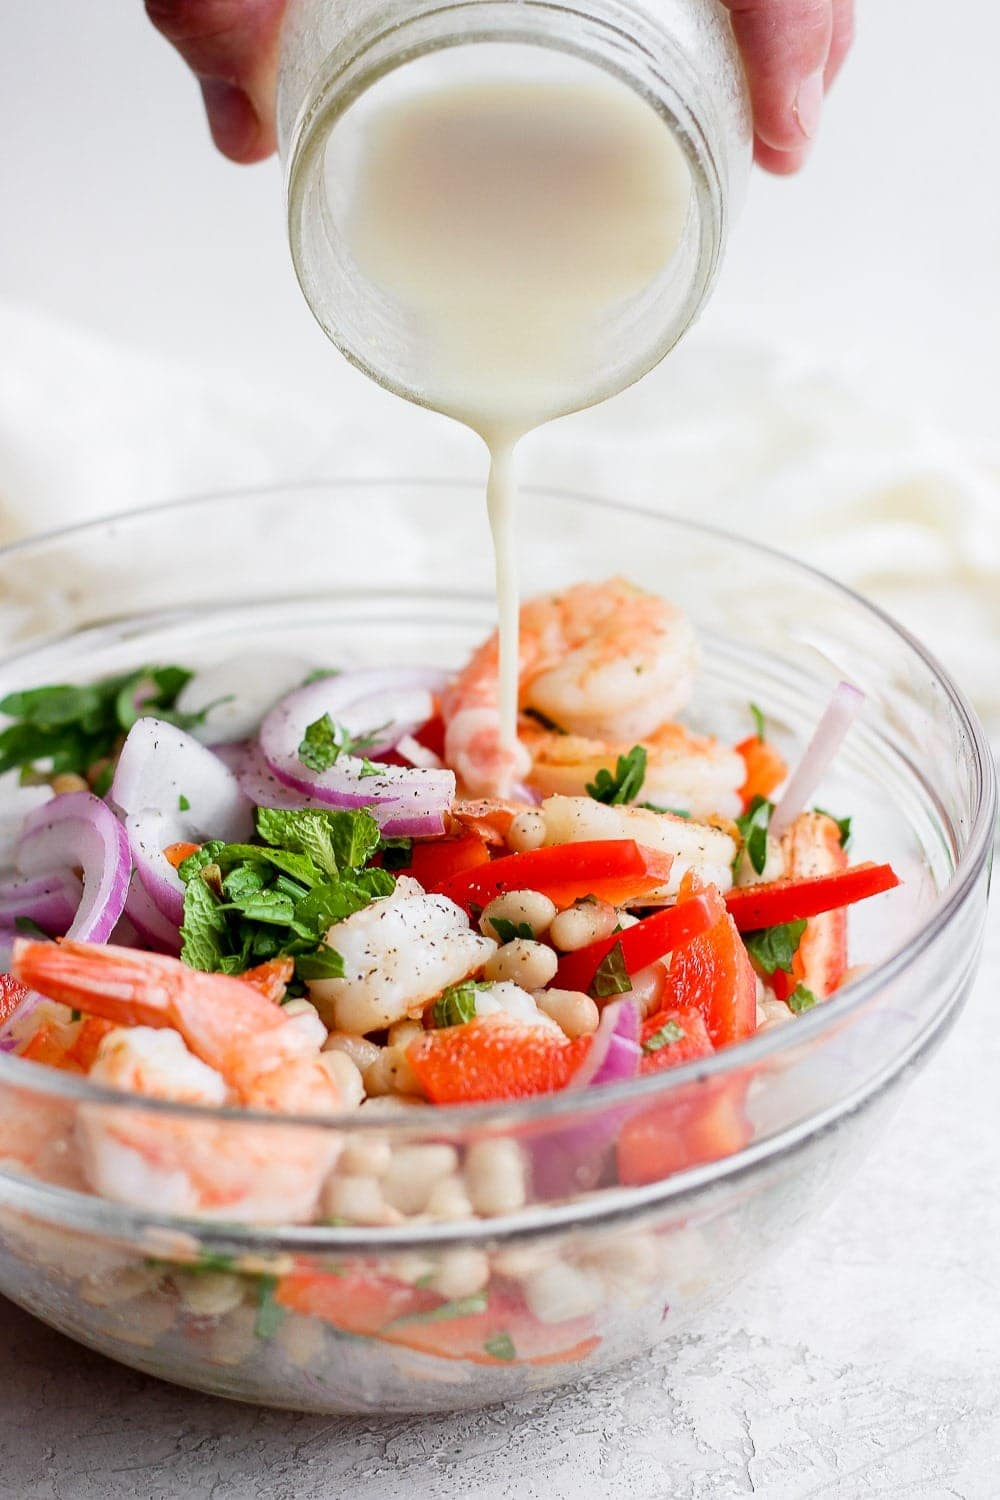 creamy dressing being poured over healthy shrimp salad